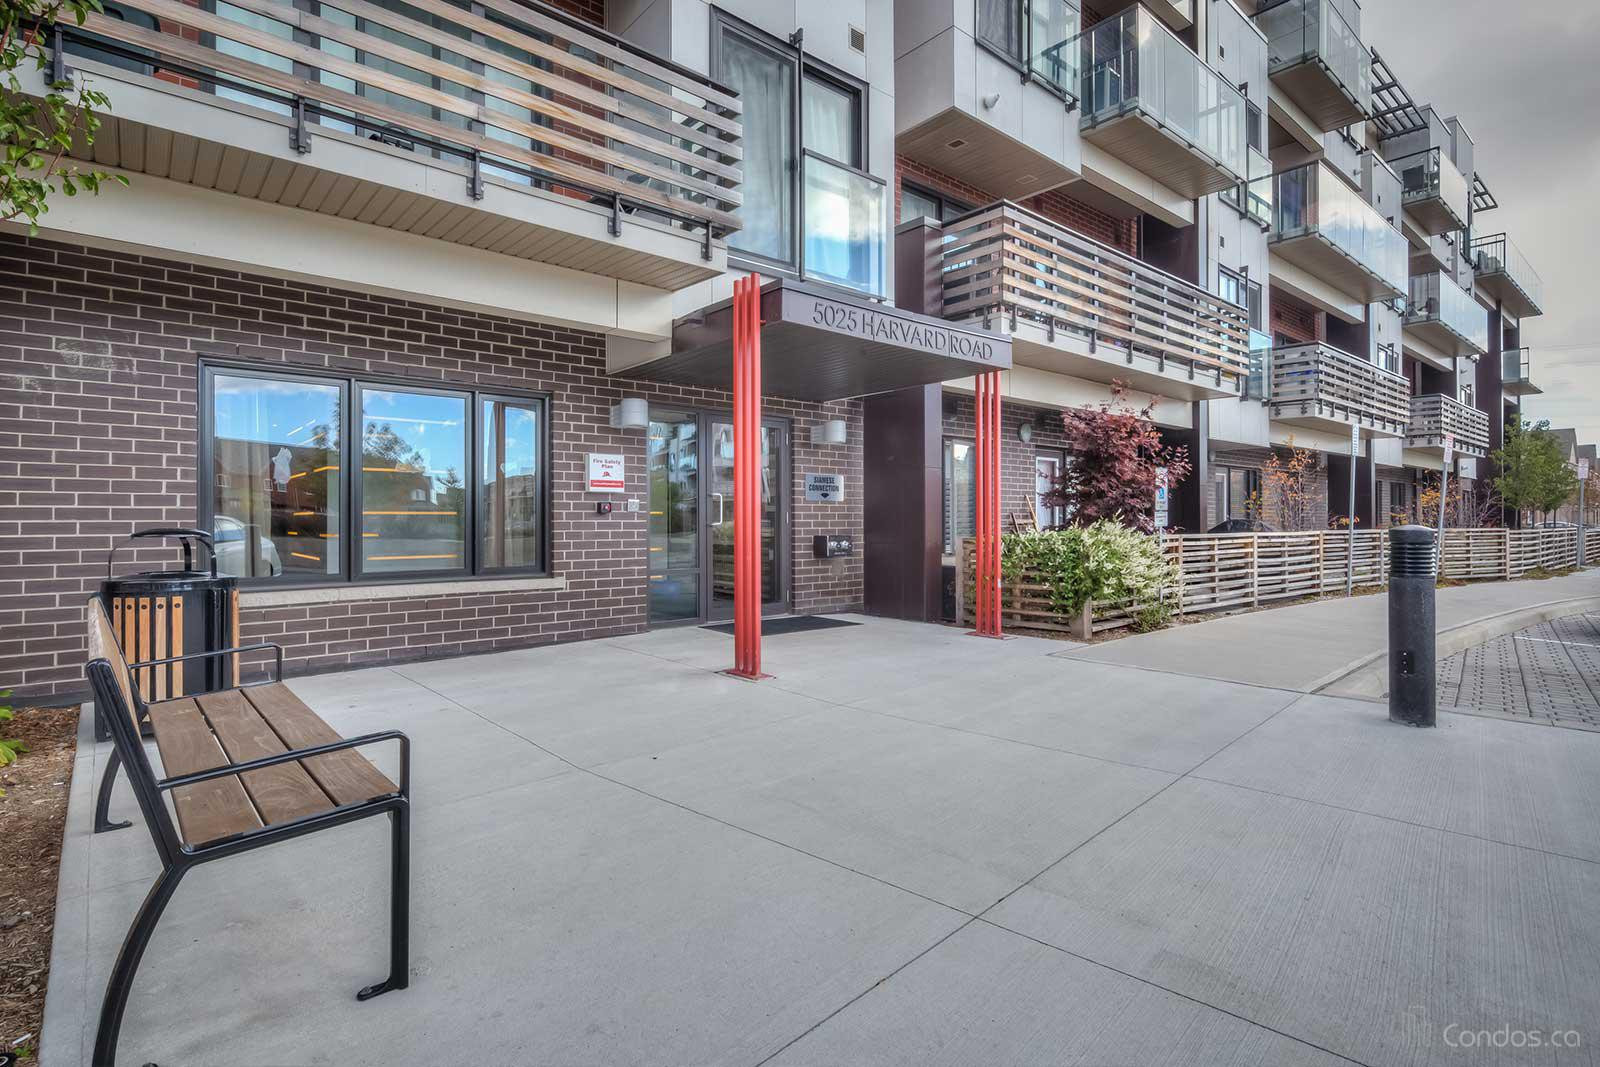 Hot Condos at 5025 Harvard Rd, Mississauga 1